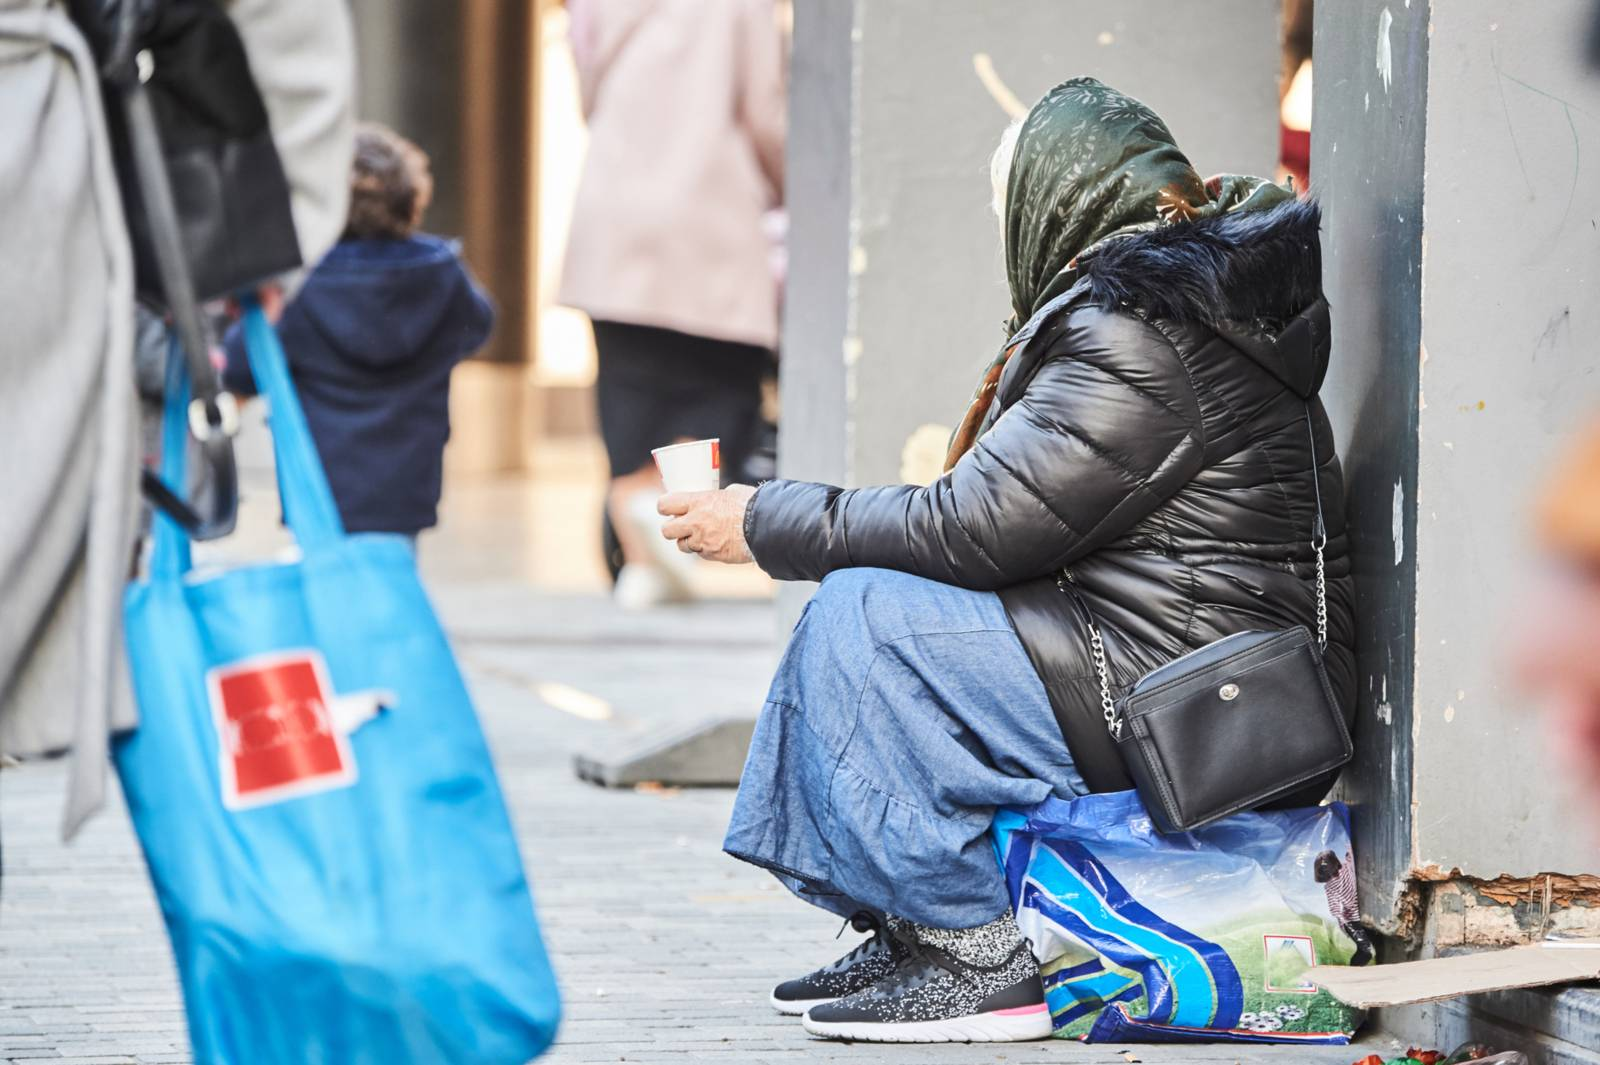 Homeless person begging on a busy shopping street